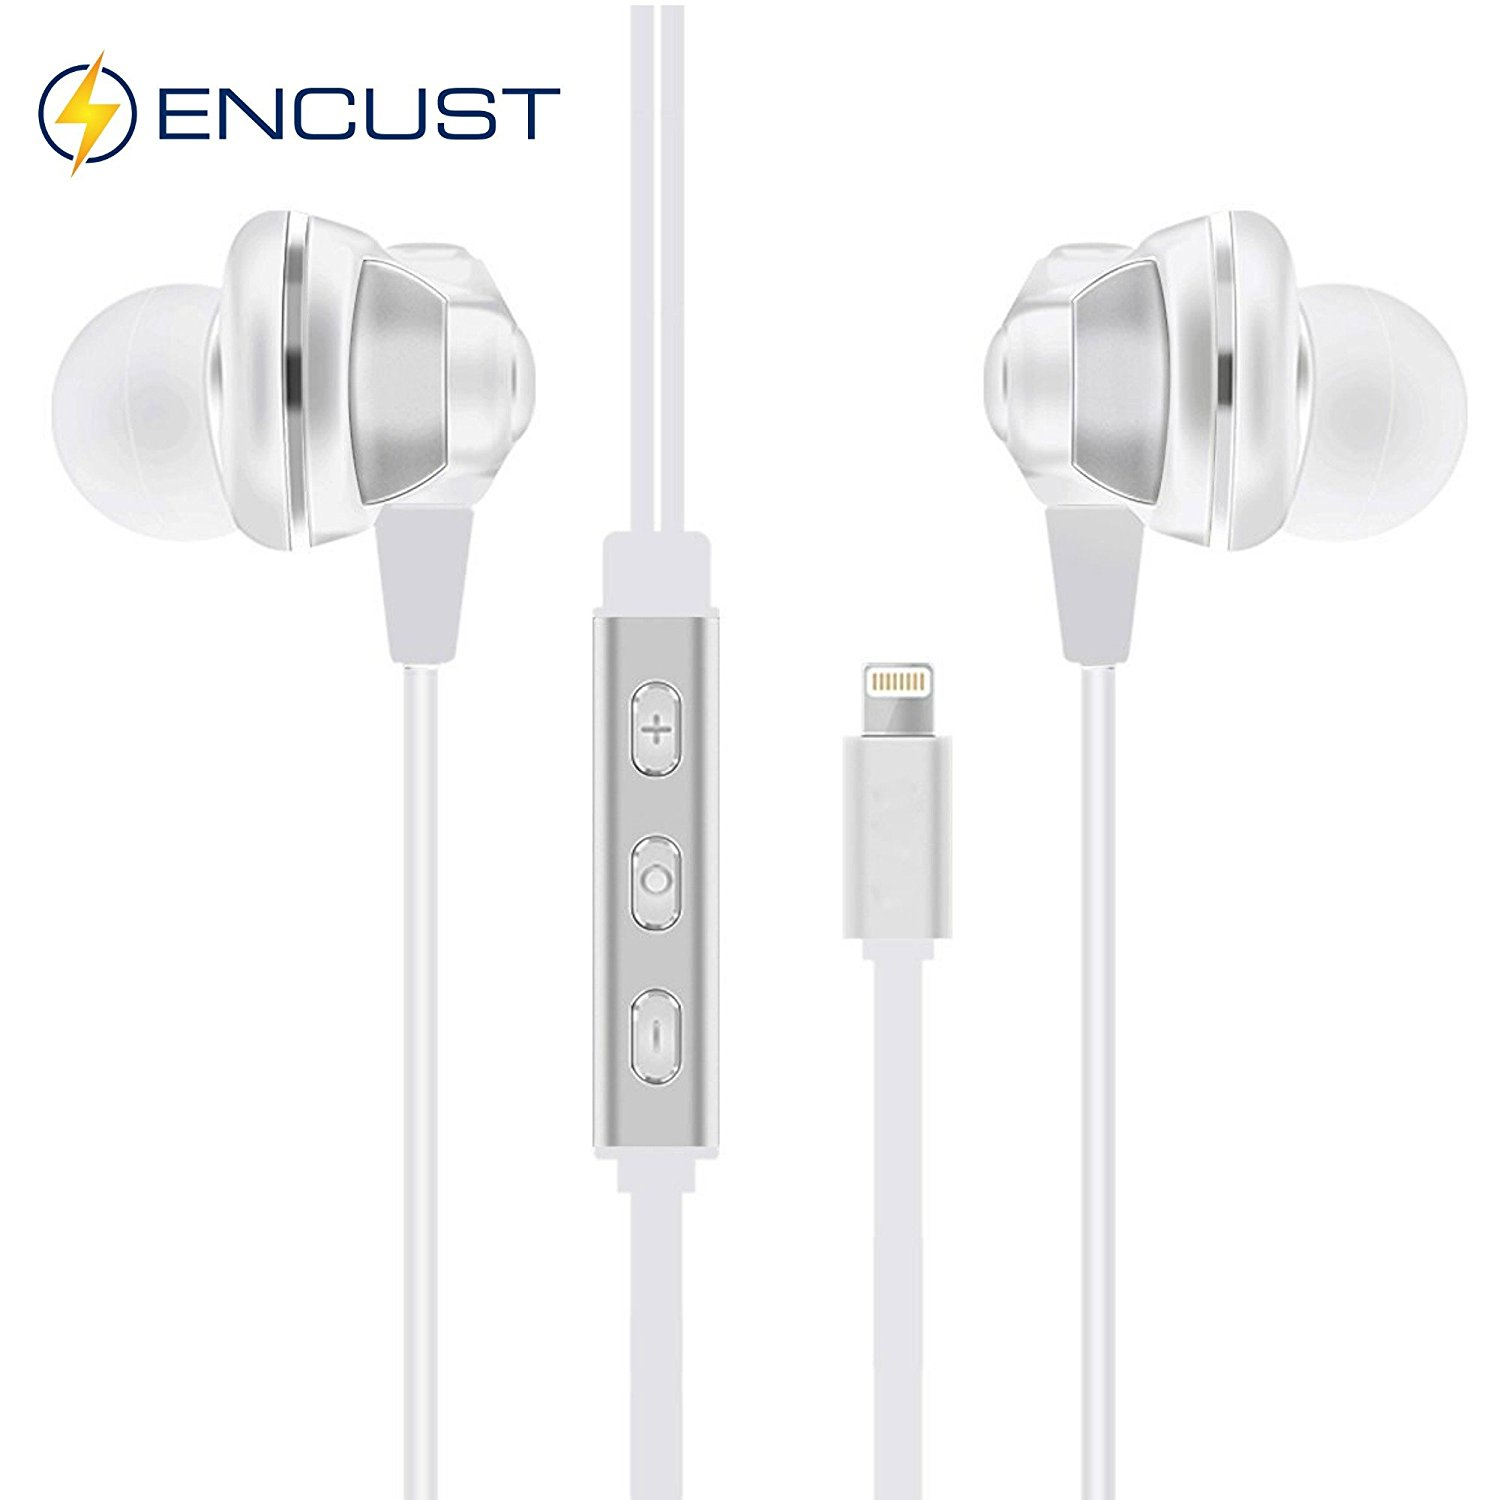 Iphone earphones noise cancelling - noise cancelling earphones wired